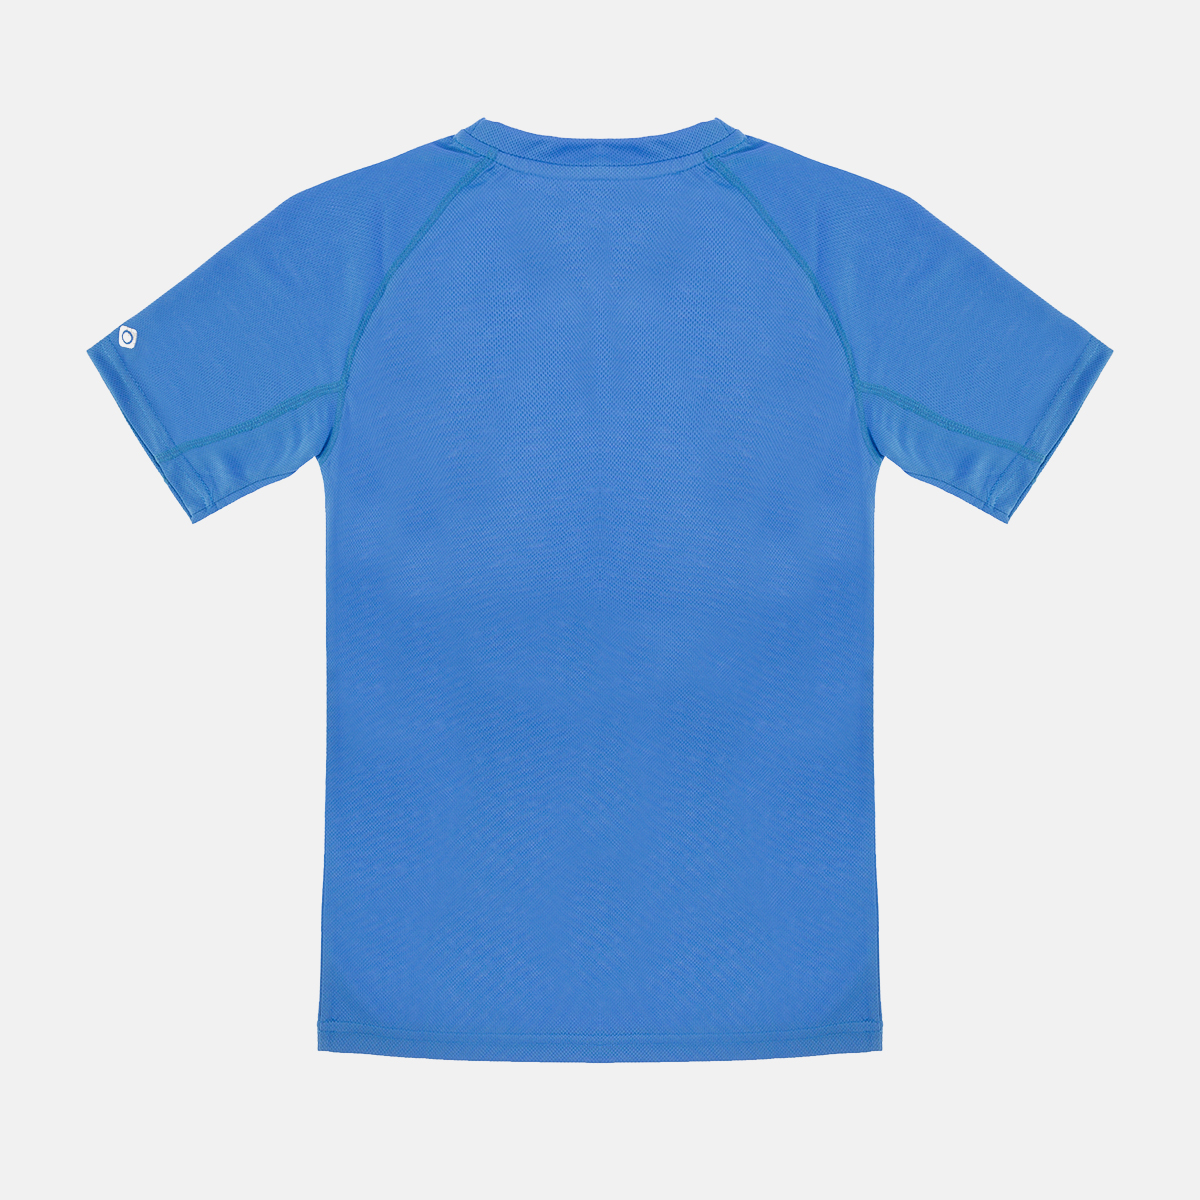 CREUS II KIDS SHORT SLEEVE T-SHIRT BLUE